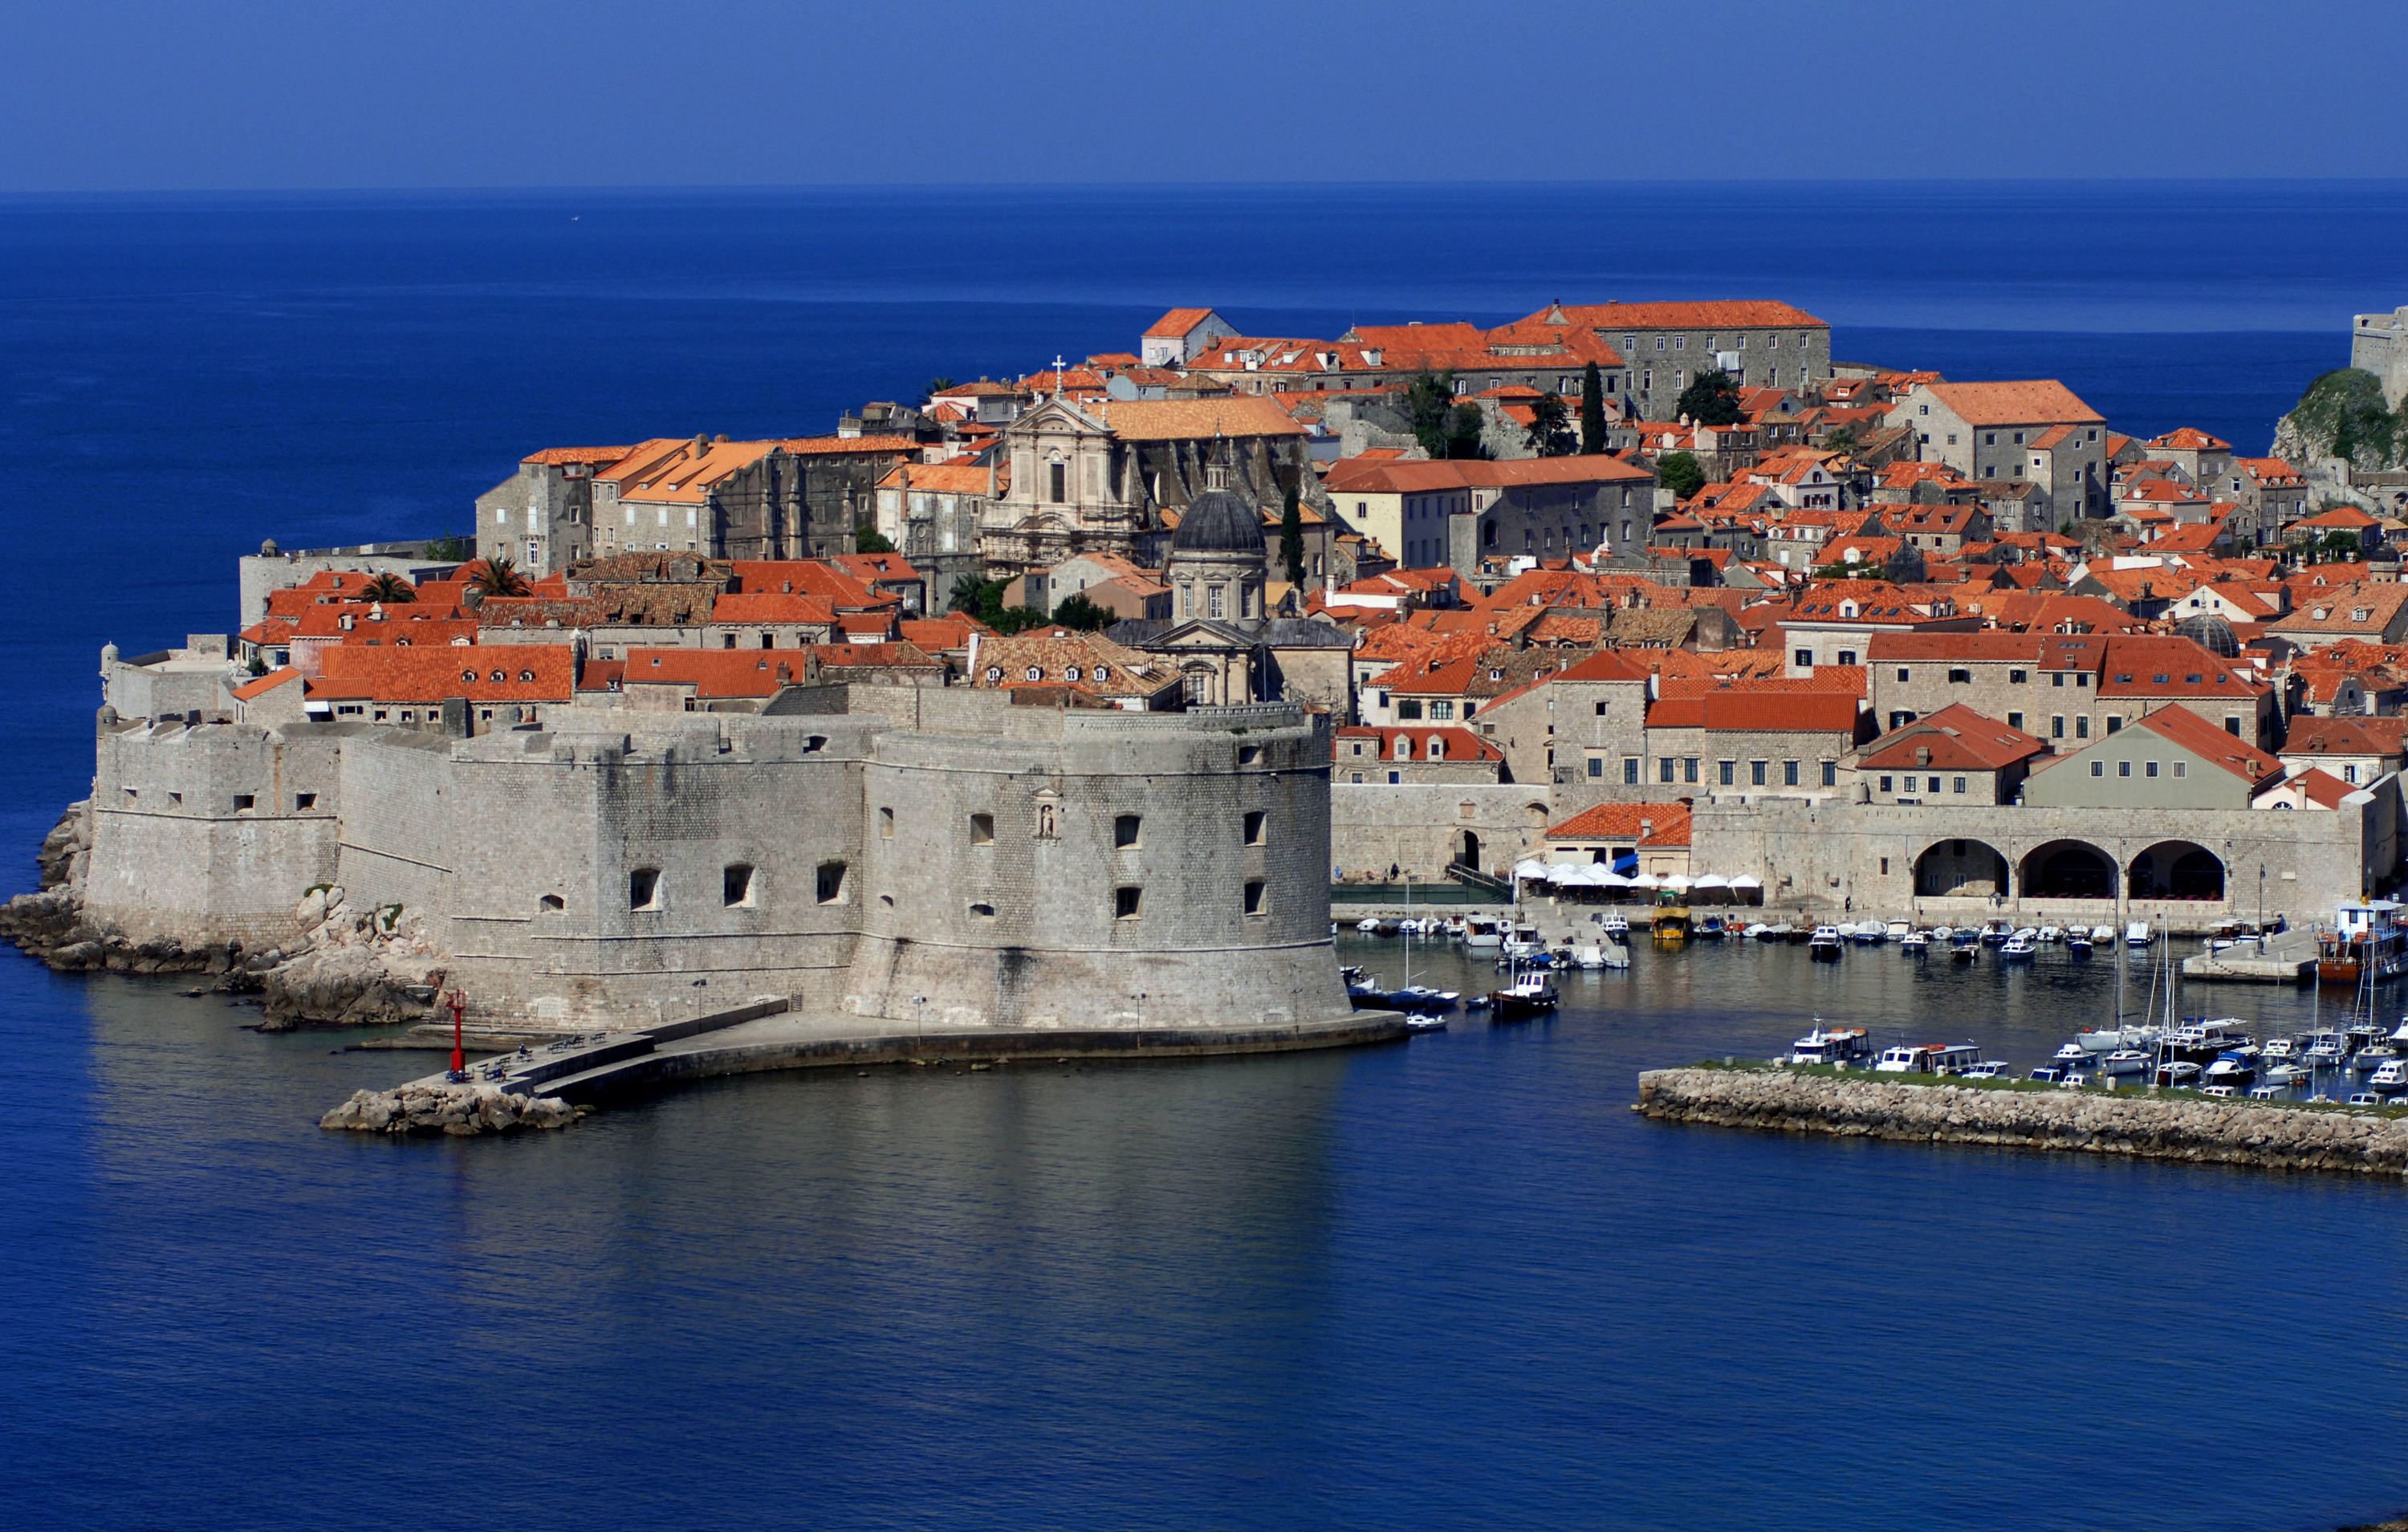 dubrovnik | Euro Palace Casino Blog